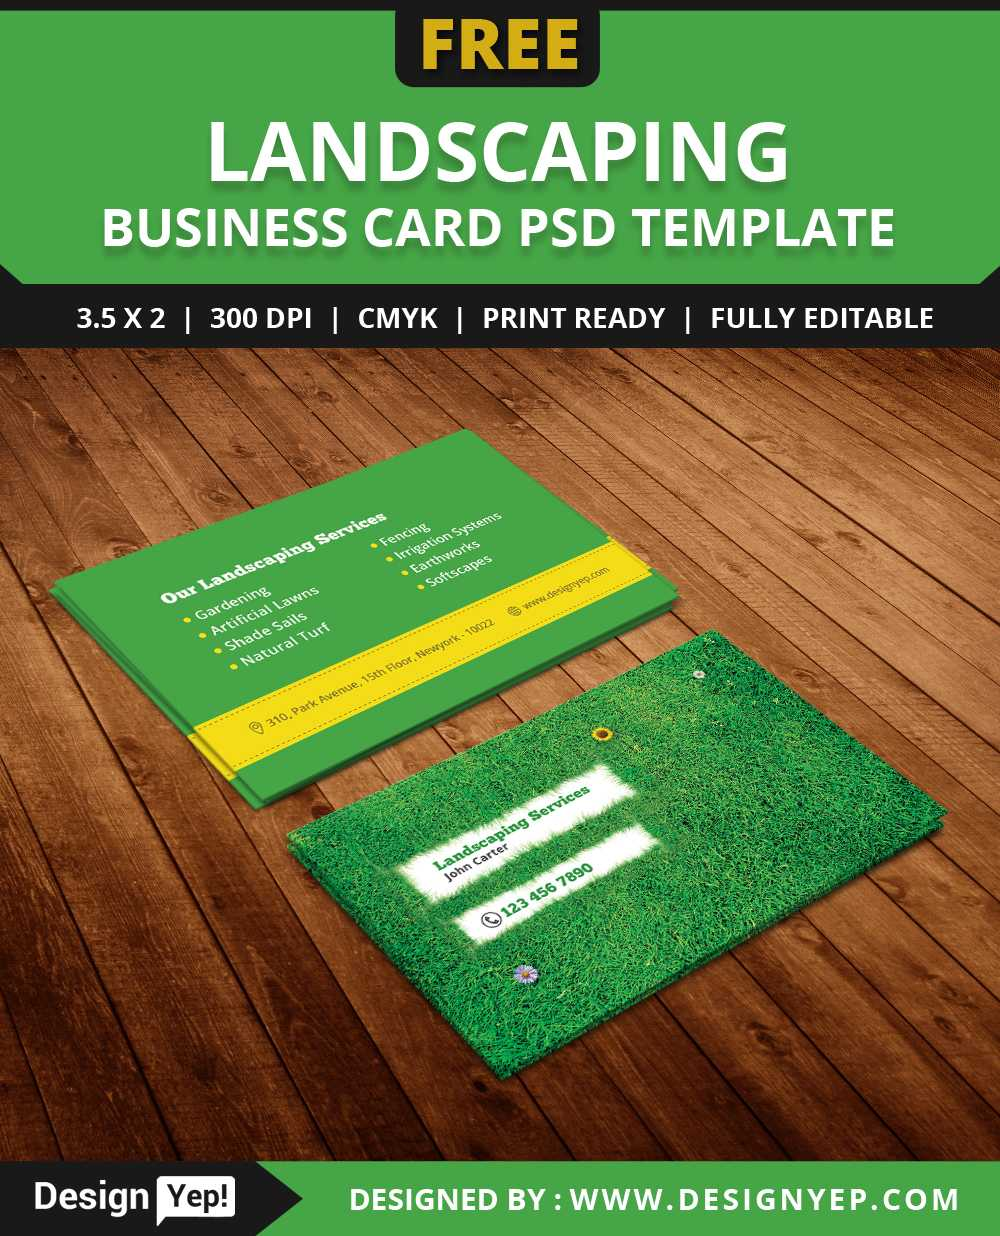 Free Landscaping Business Card Template Psd - Designyep With Landscaping Business Card Template